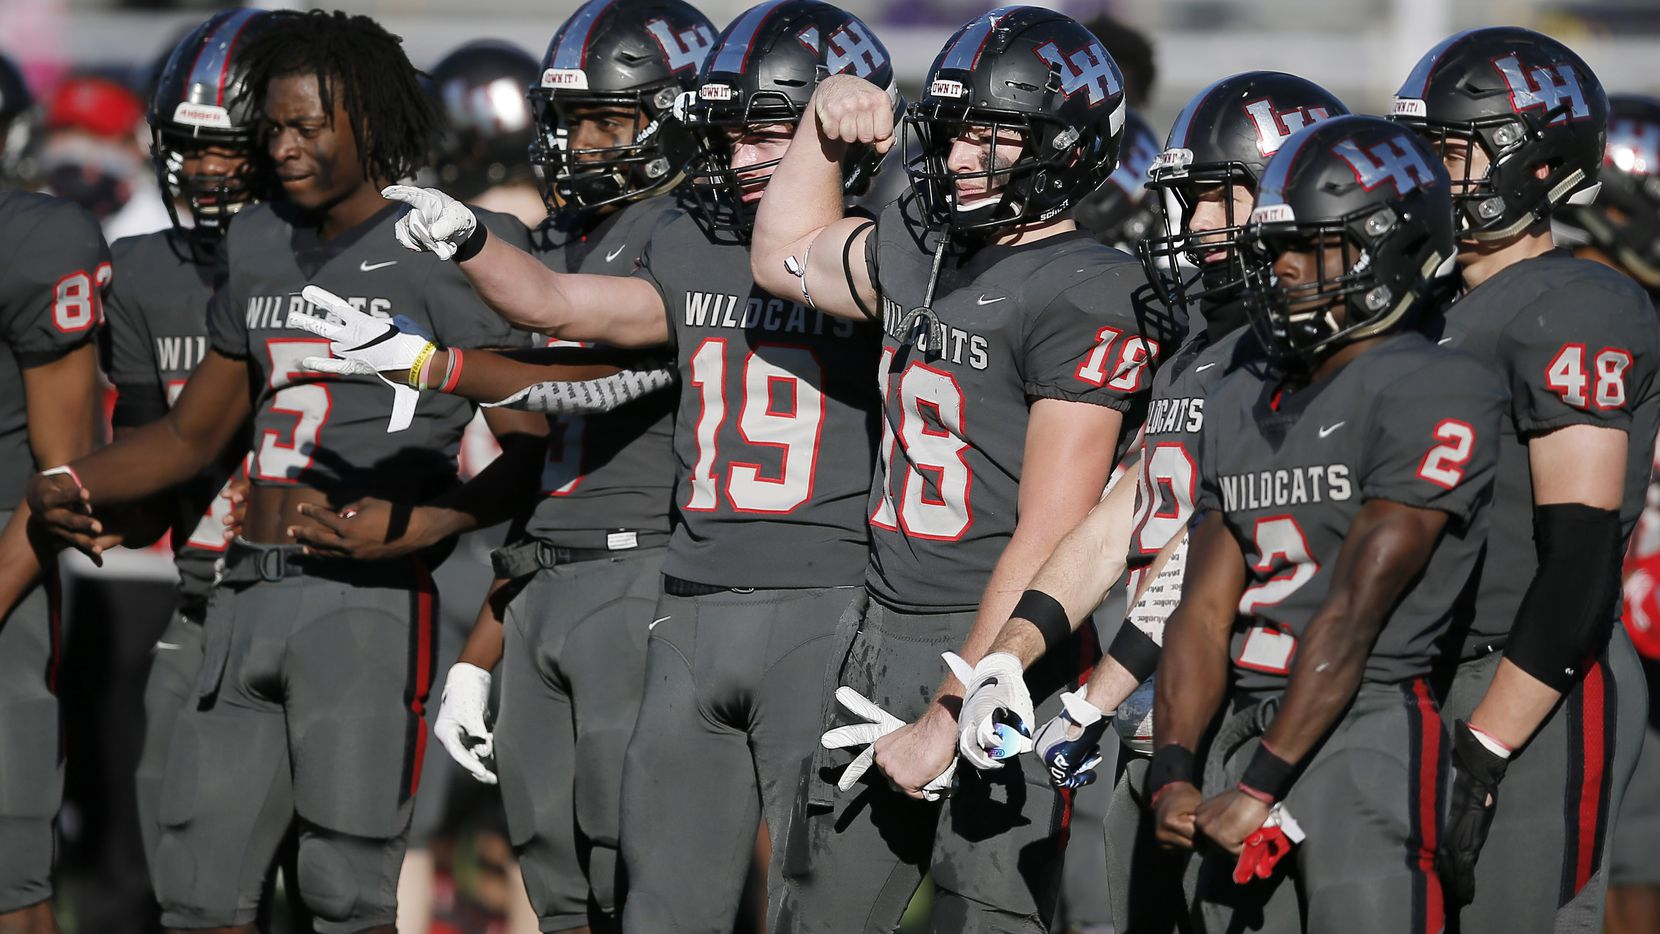 TXHSFB Lake Highlands celebrates a 34-7 win over Richardson after a high school playoff football game at Wildcat-Ram Stadium in Dallas, Wednesday, November 25, 2020. (Brandon Wade/Special Contributor)